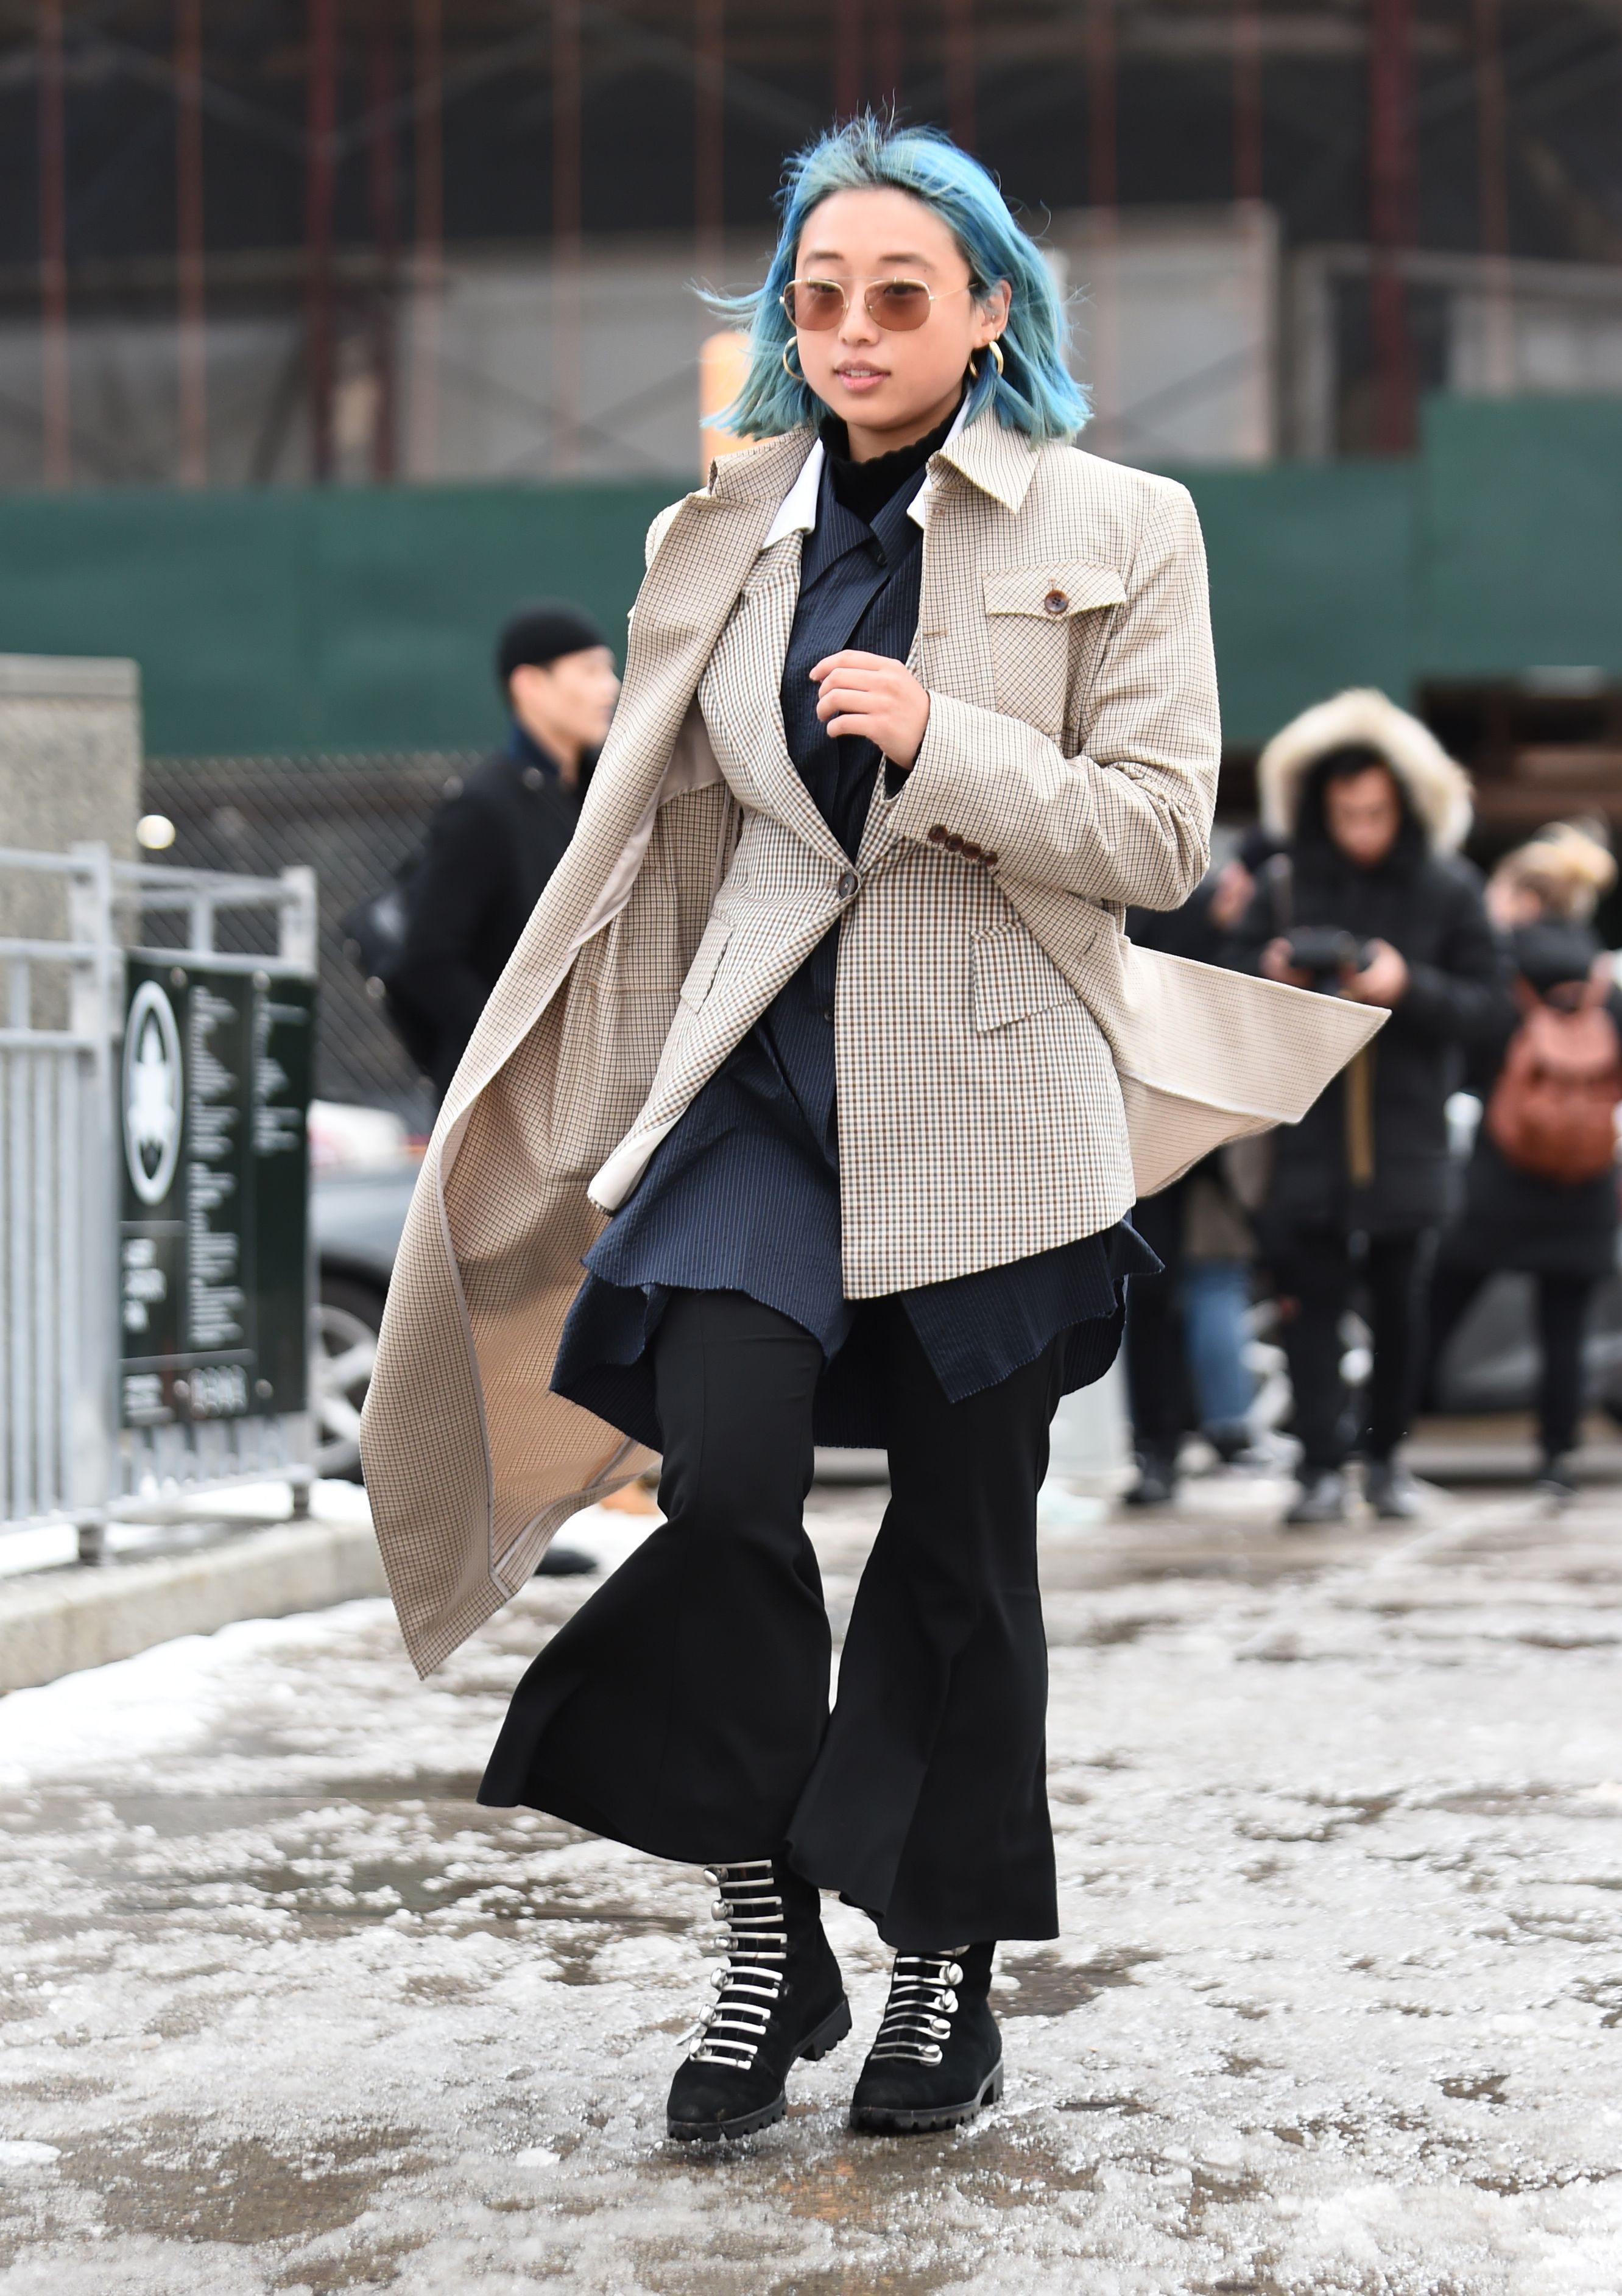 Fashion Trends of Winter 2019,2020 \u2014 New Winter Trends to